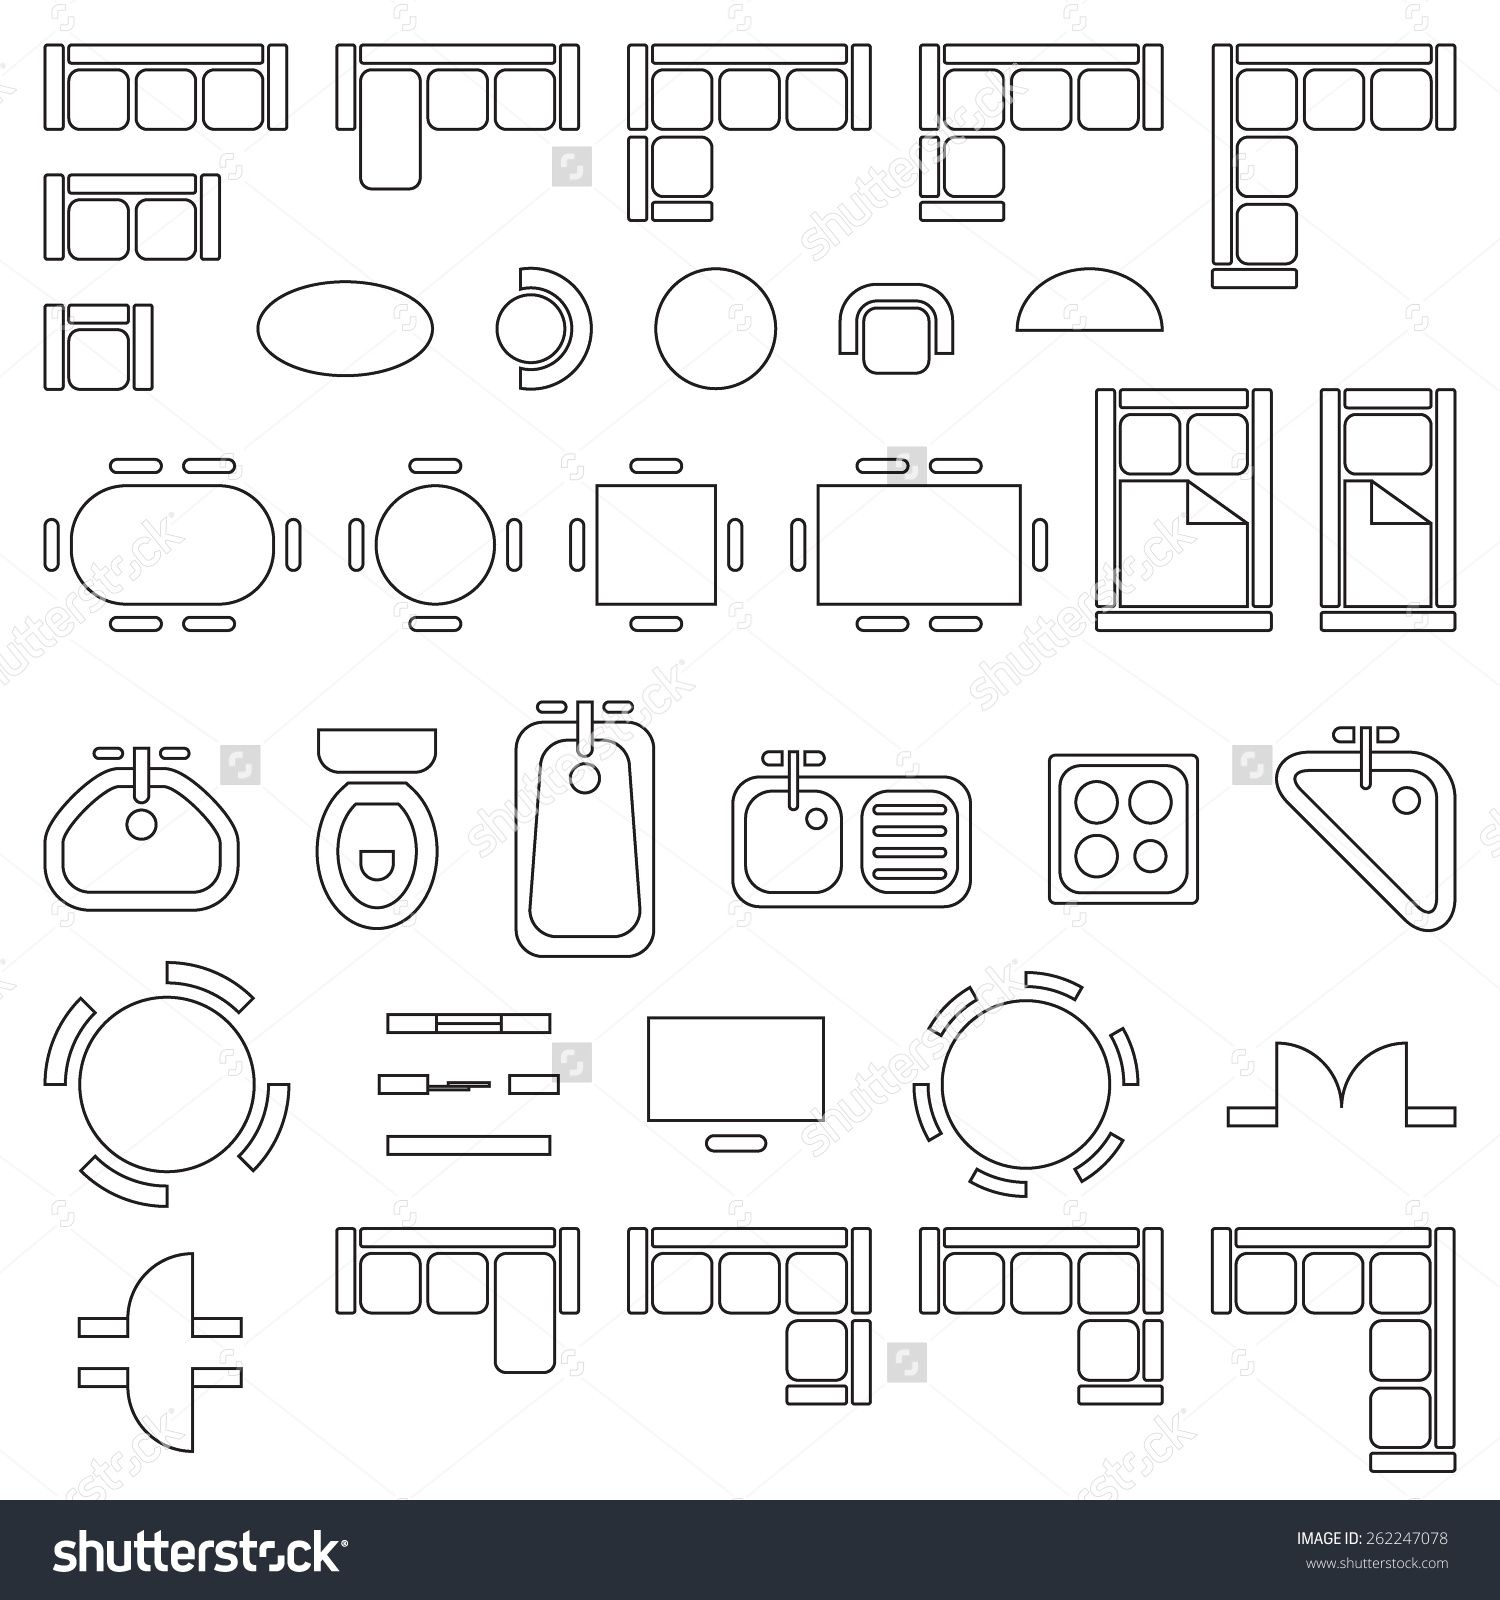 small resolution of standard furniture symbols in architecture plans icons set save to a lightbox dining room centerpieces upholstered